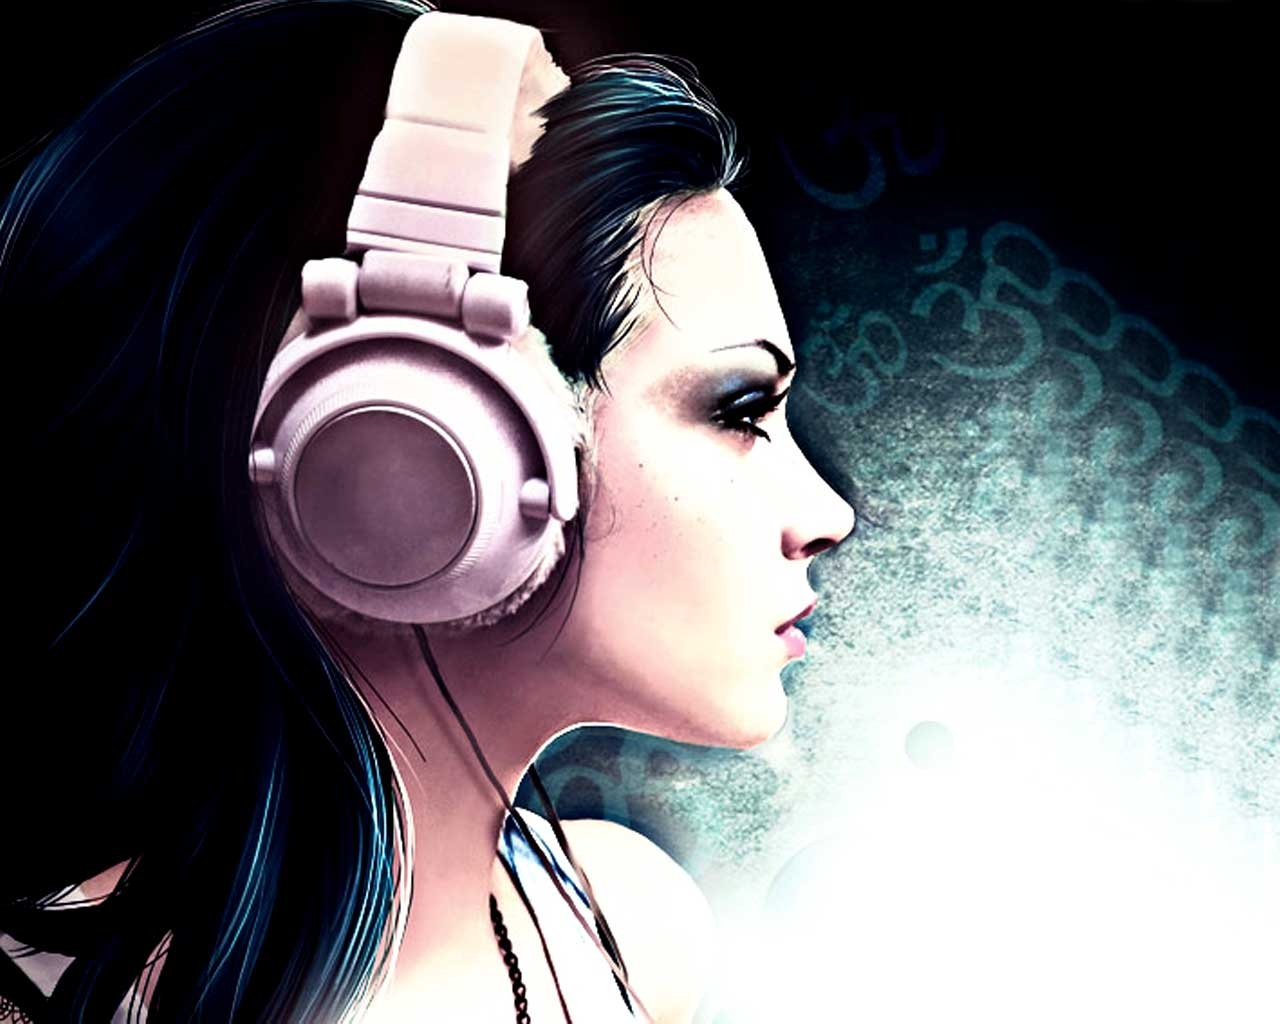 music girl wallpapers headphones - photo #44